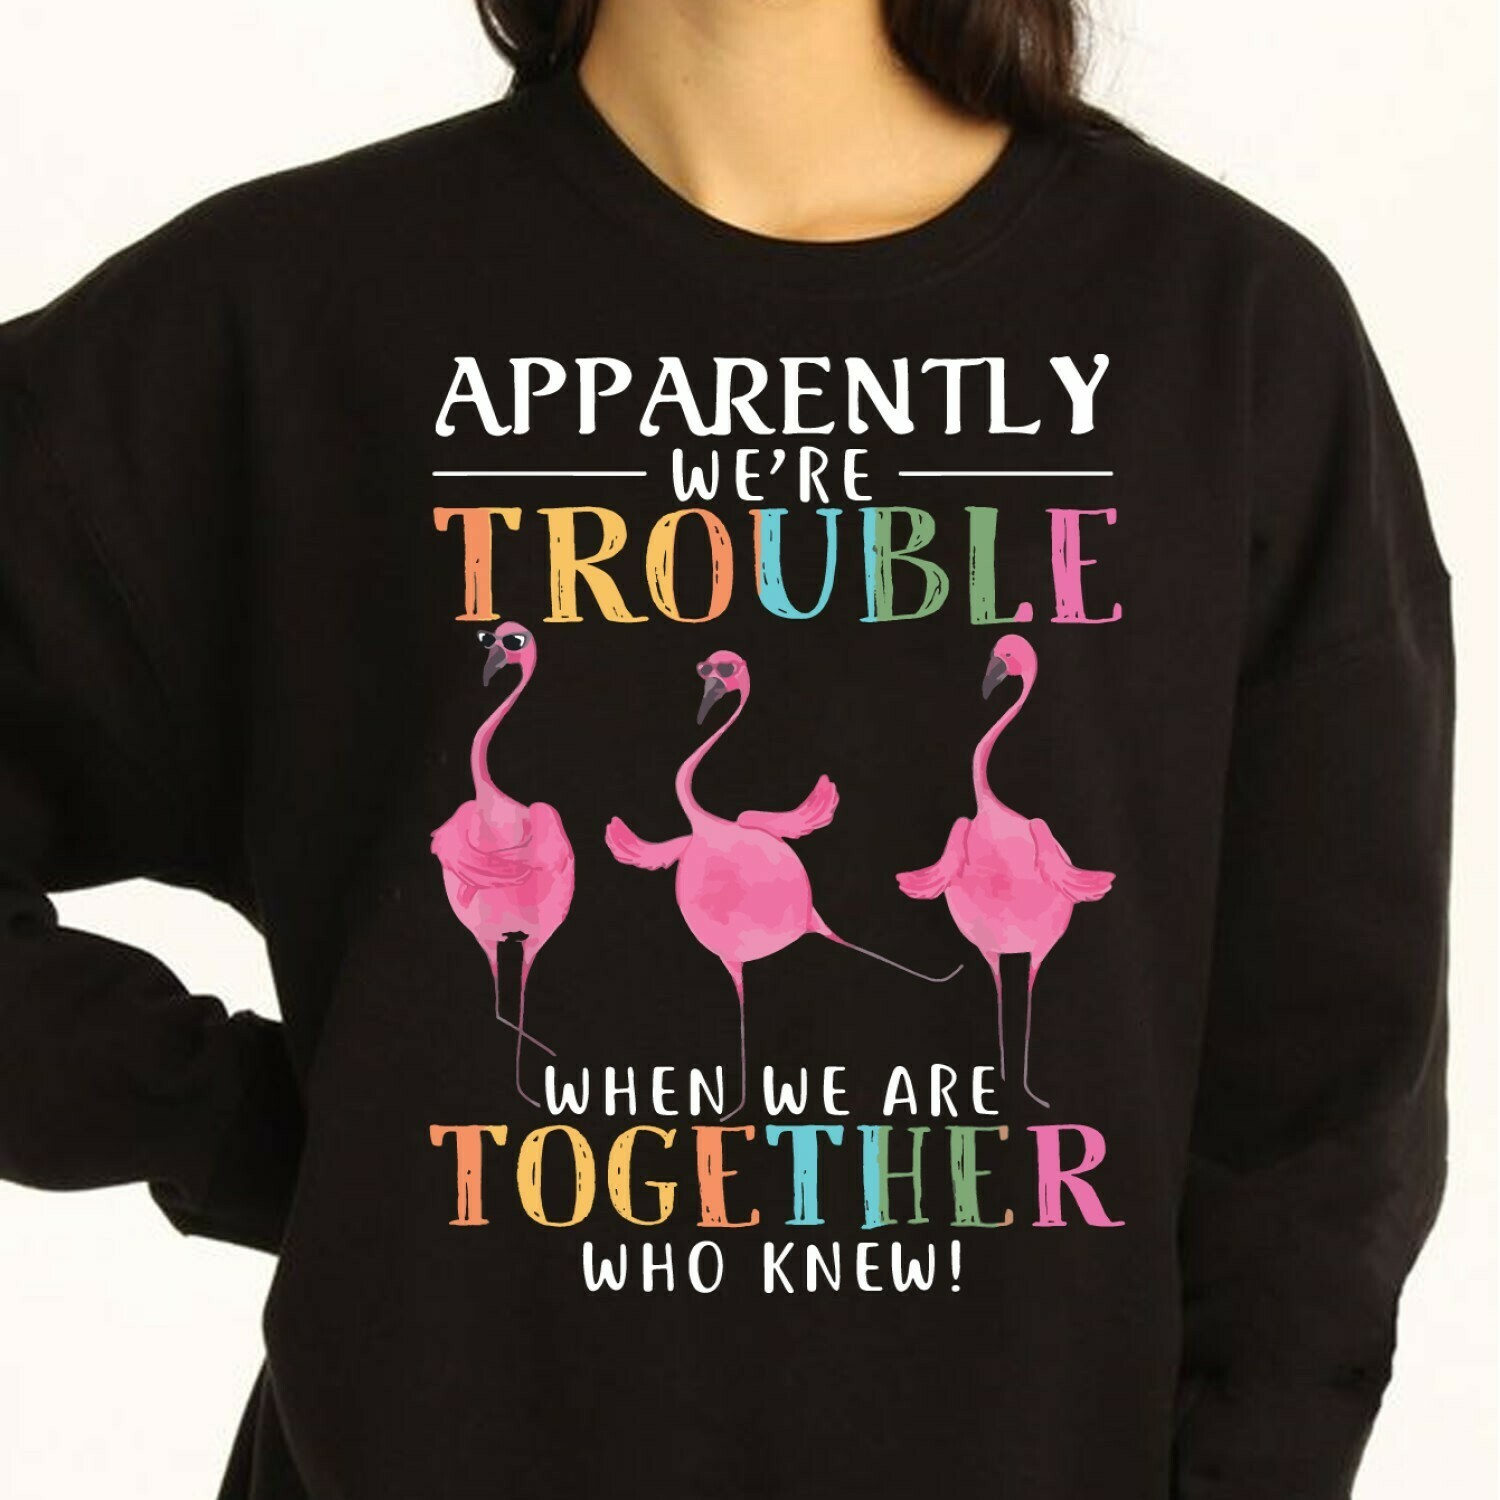 Apparently We Are Trouble When We Are Together Who Knew Funny Wine Flamingo Party Vacation Gift For Friends Team Group Camping Girls T Shirt Long Sleeve Sweatshirt Hoodie Jolly Family Gifts